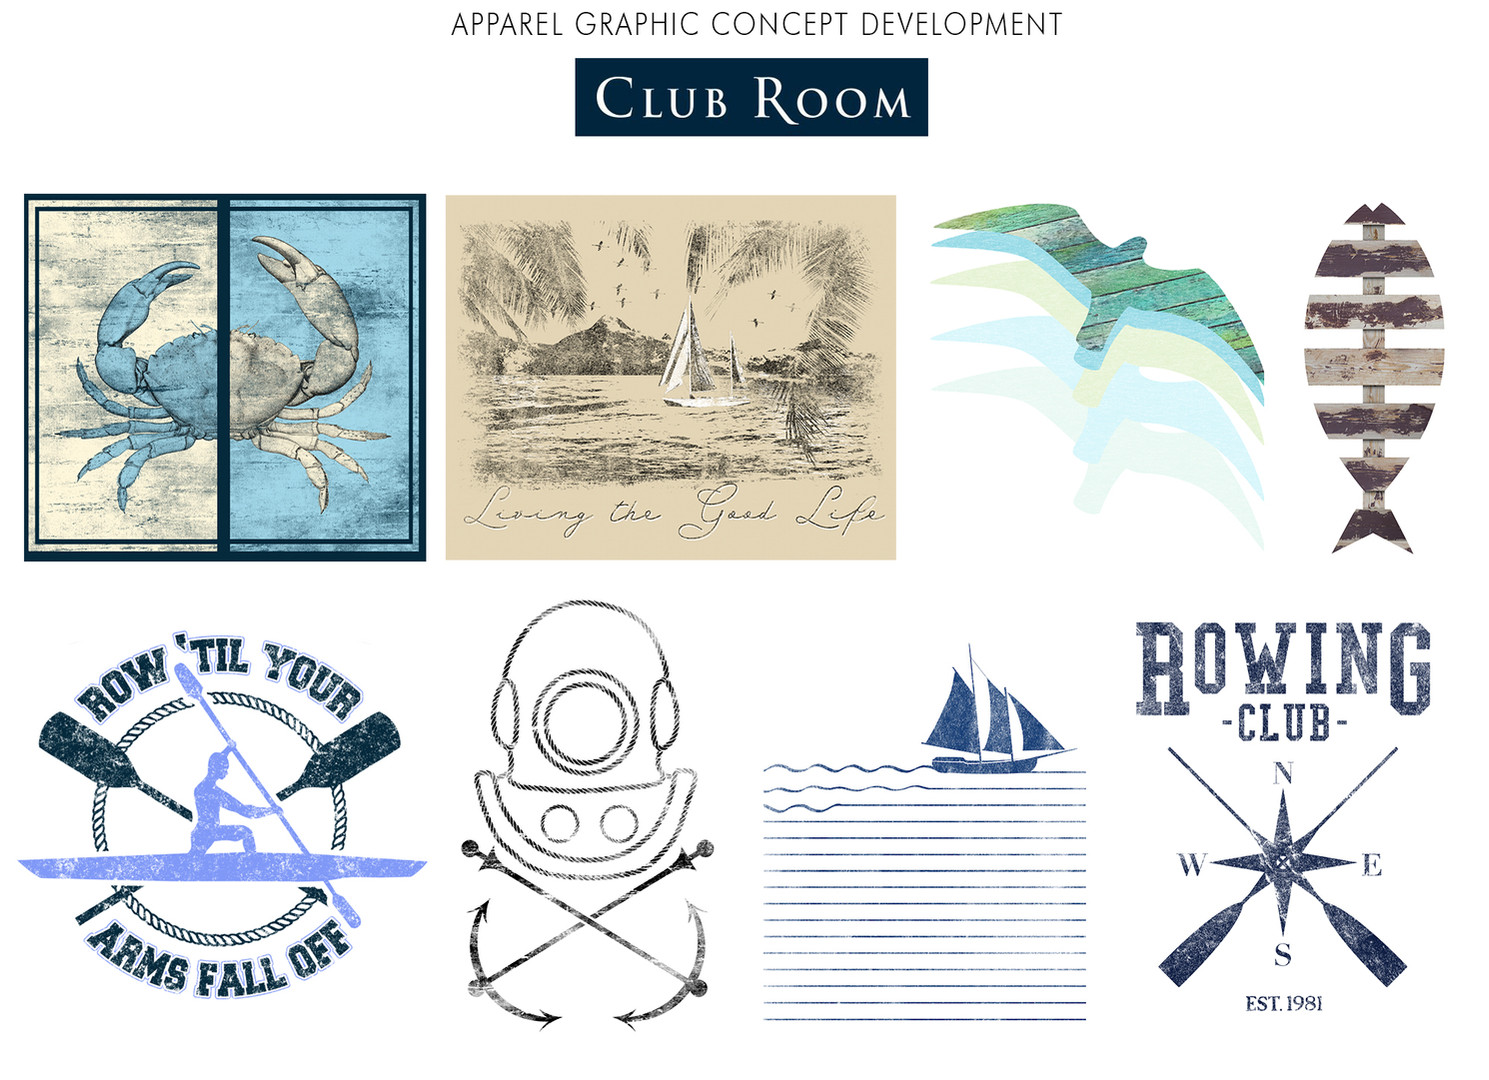 Apparel graphic concept development forMacy's Club Room.